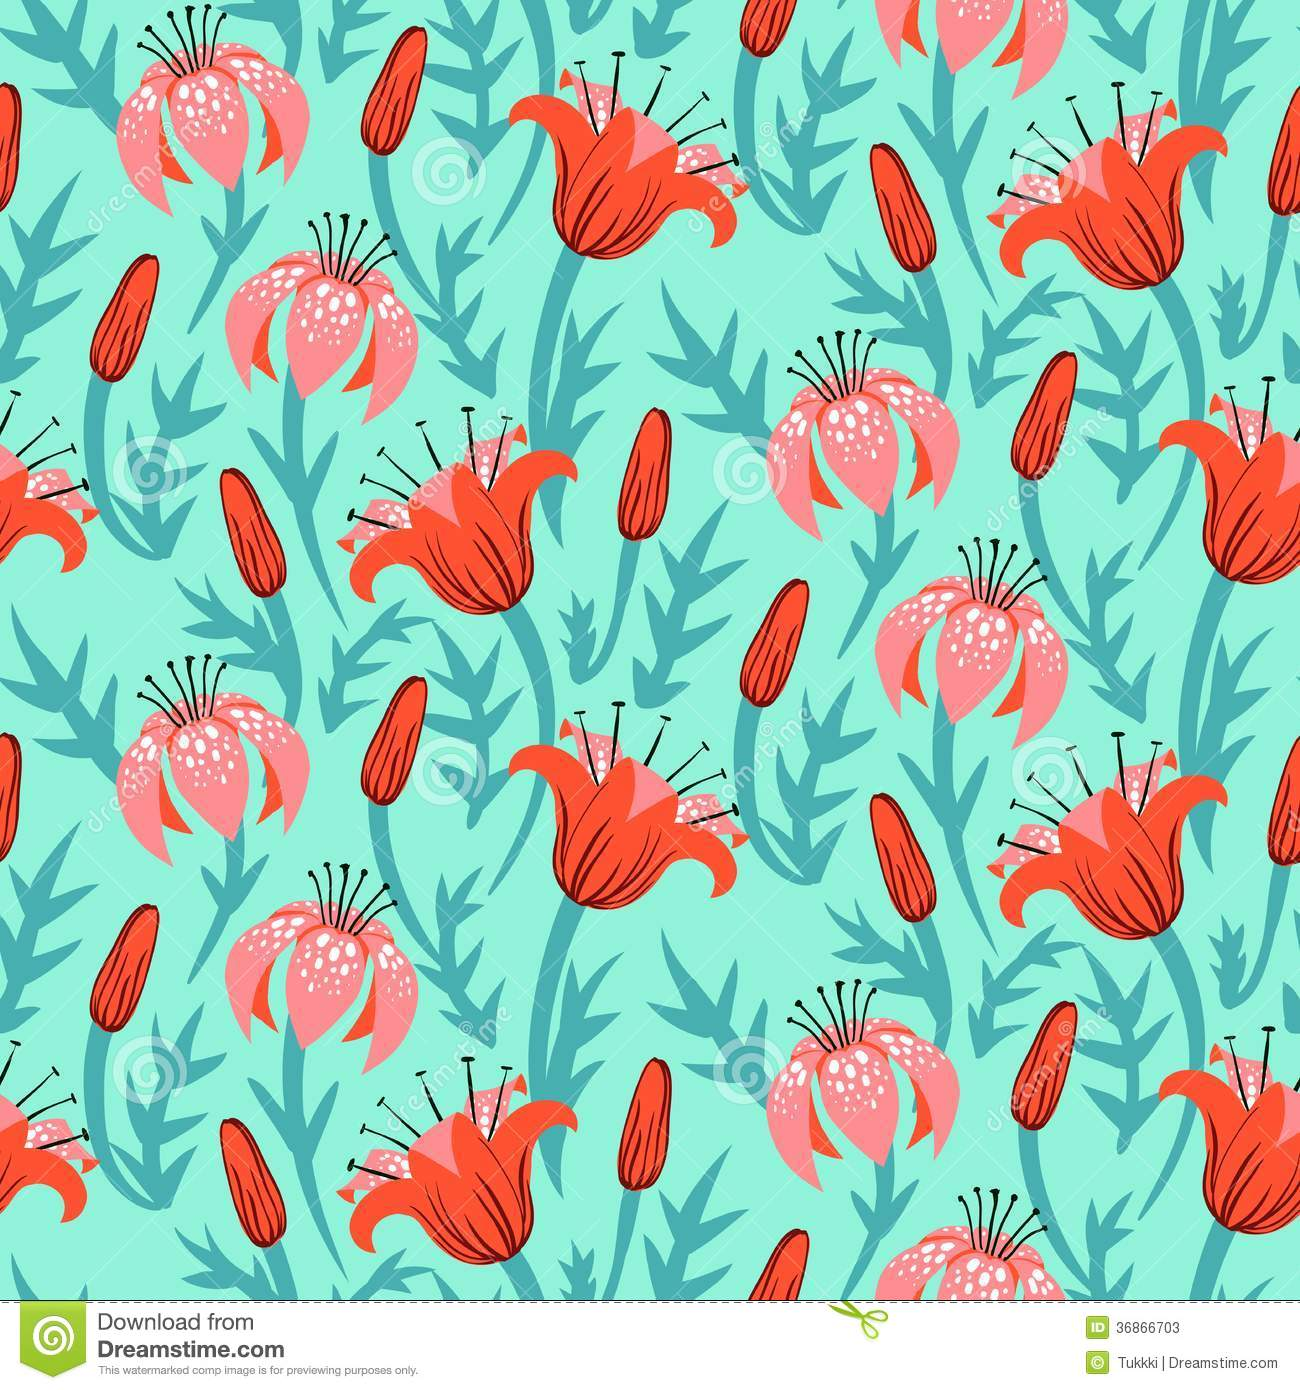 Iphone 5 Wallpaper Floral Vector Floral Pattern With Tulips And Lilies Stock Vector